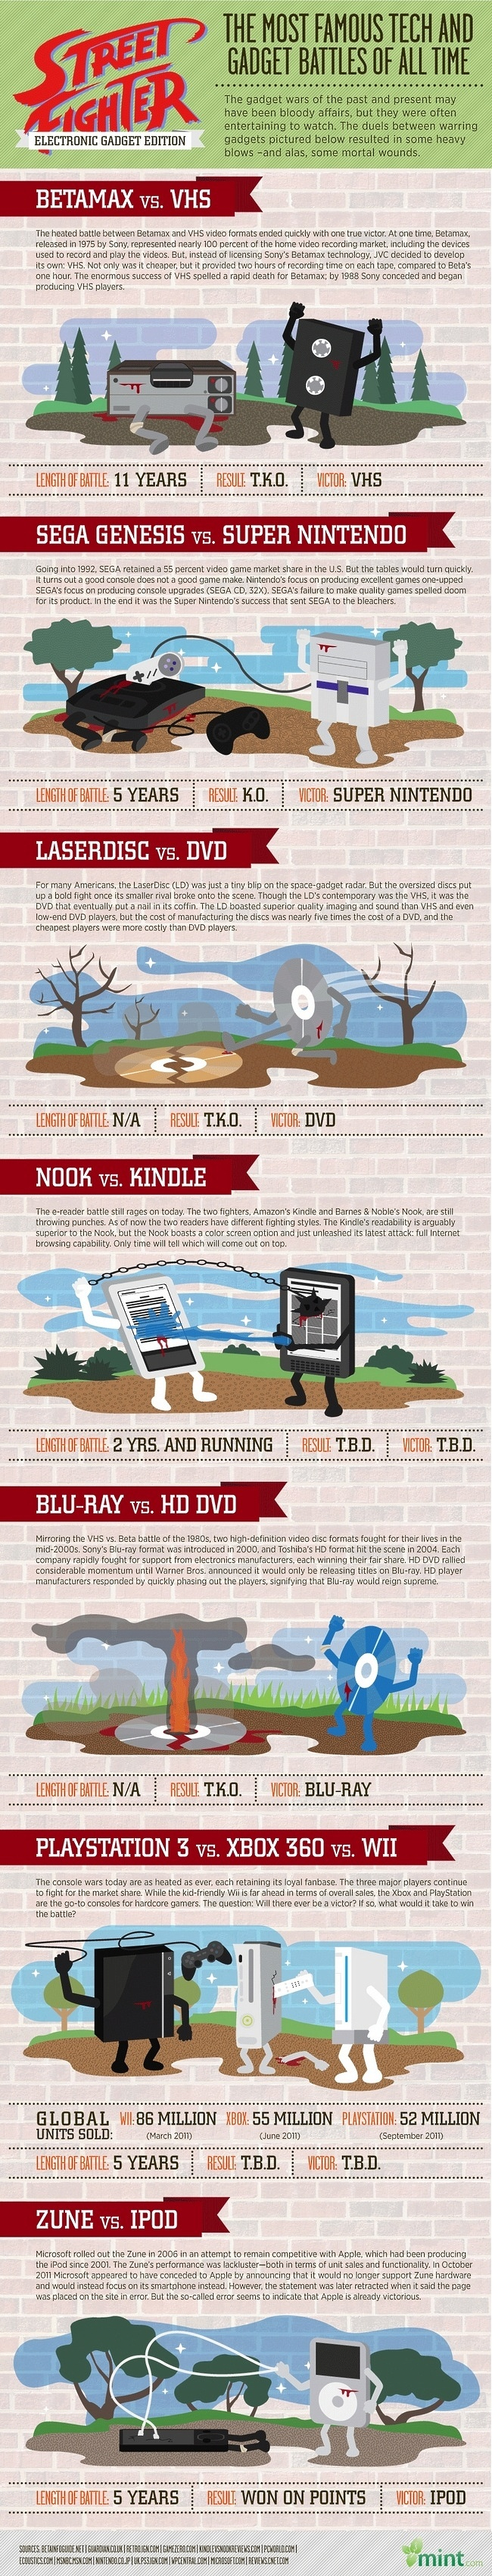 The-Most-Famous-Tech-And-Gadgets-Battle-Of-All-Time